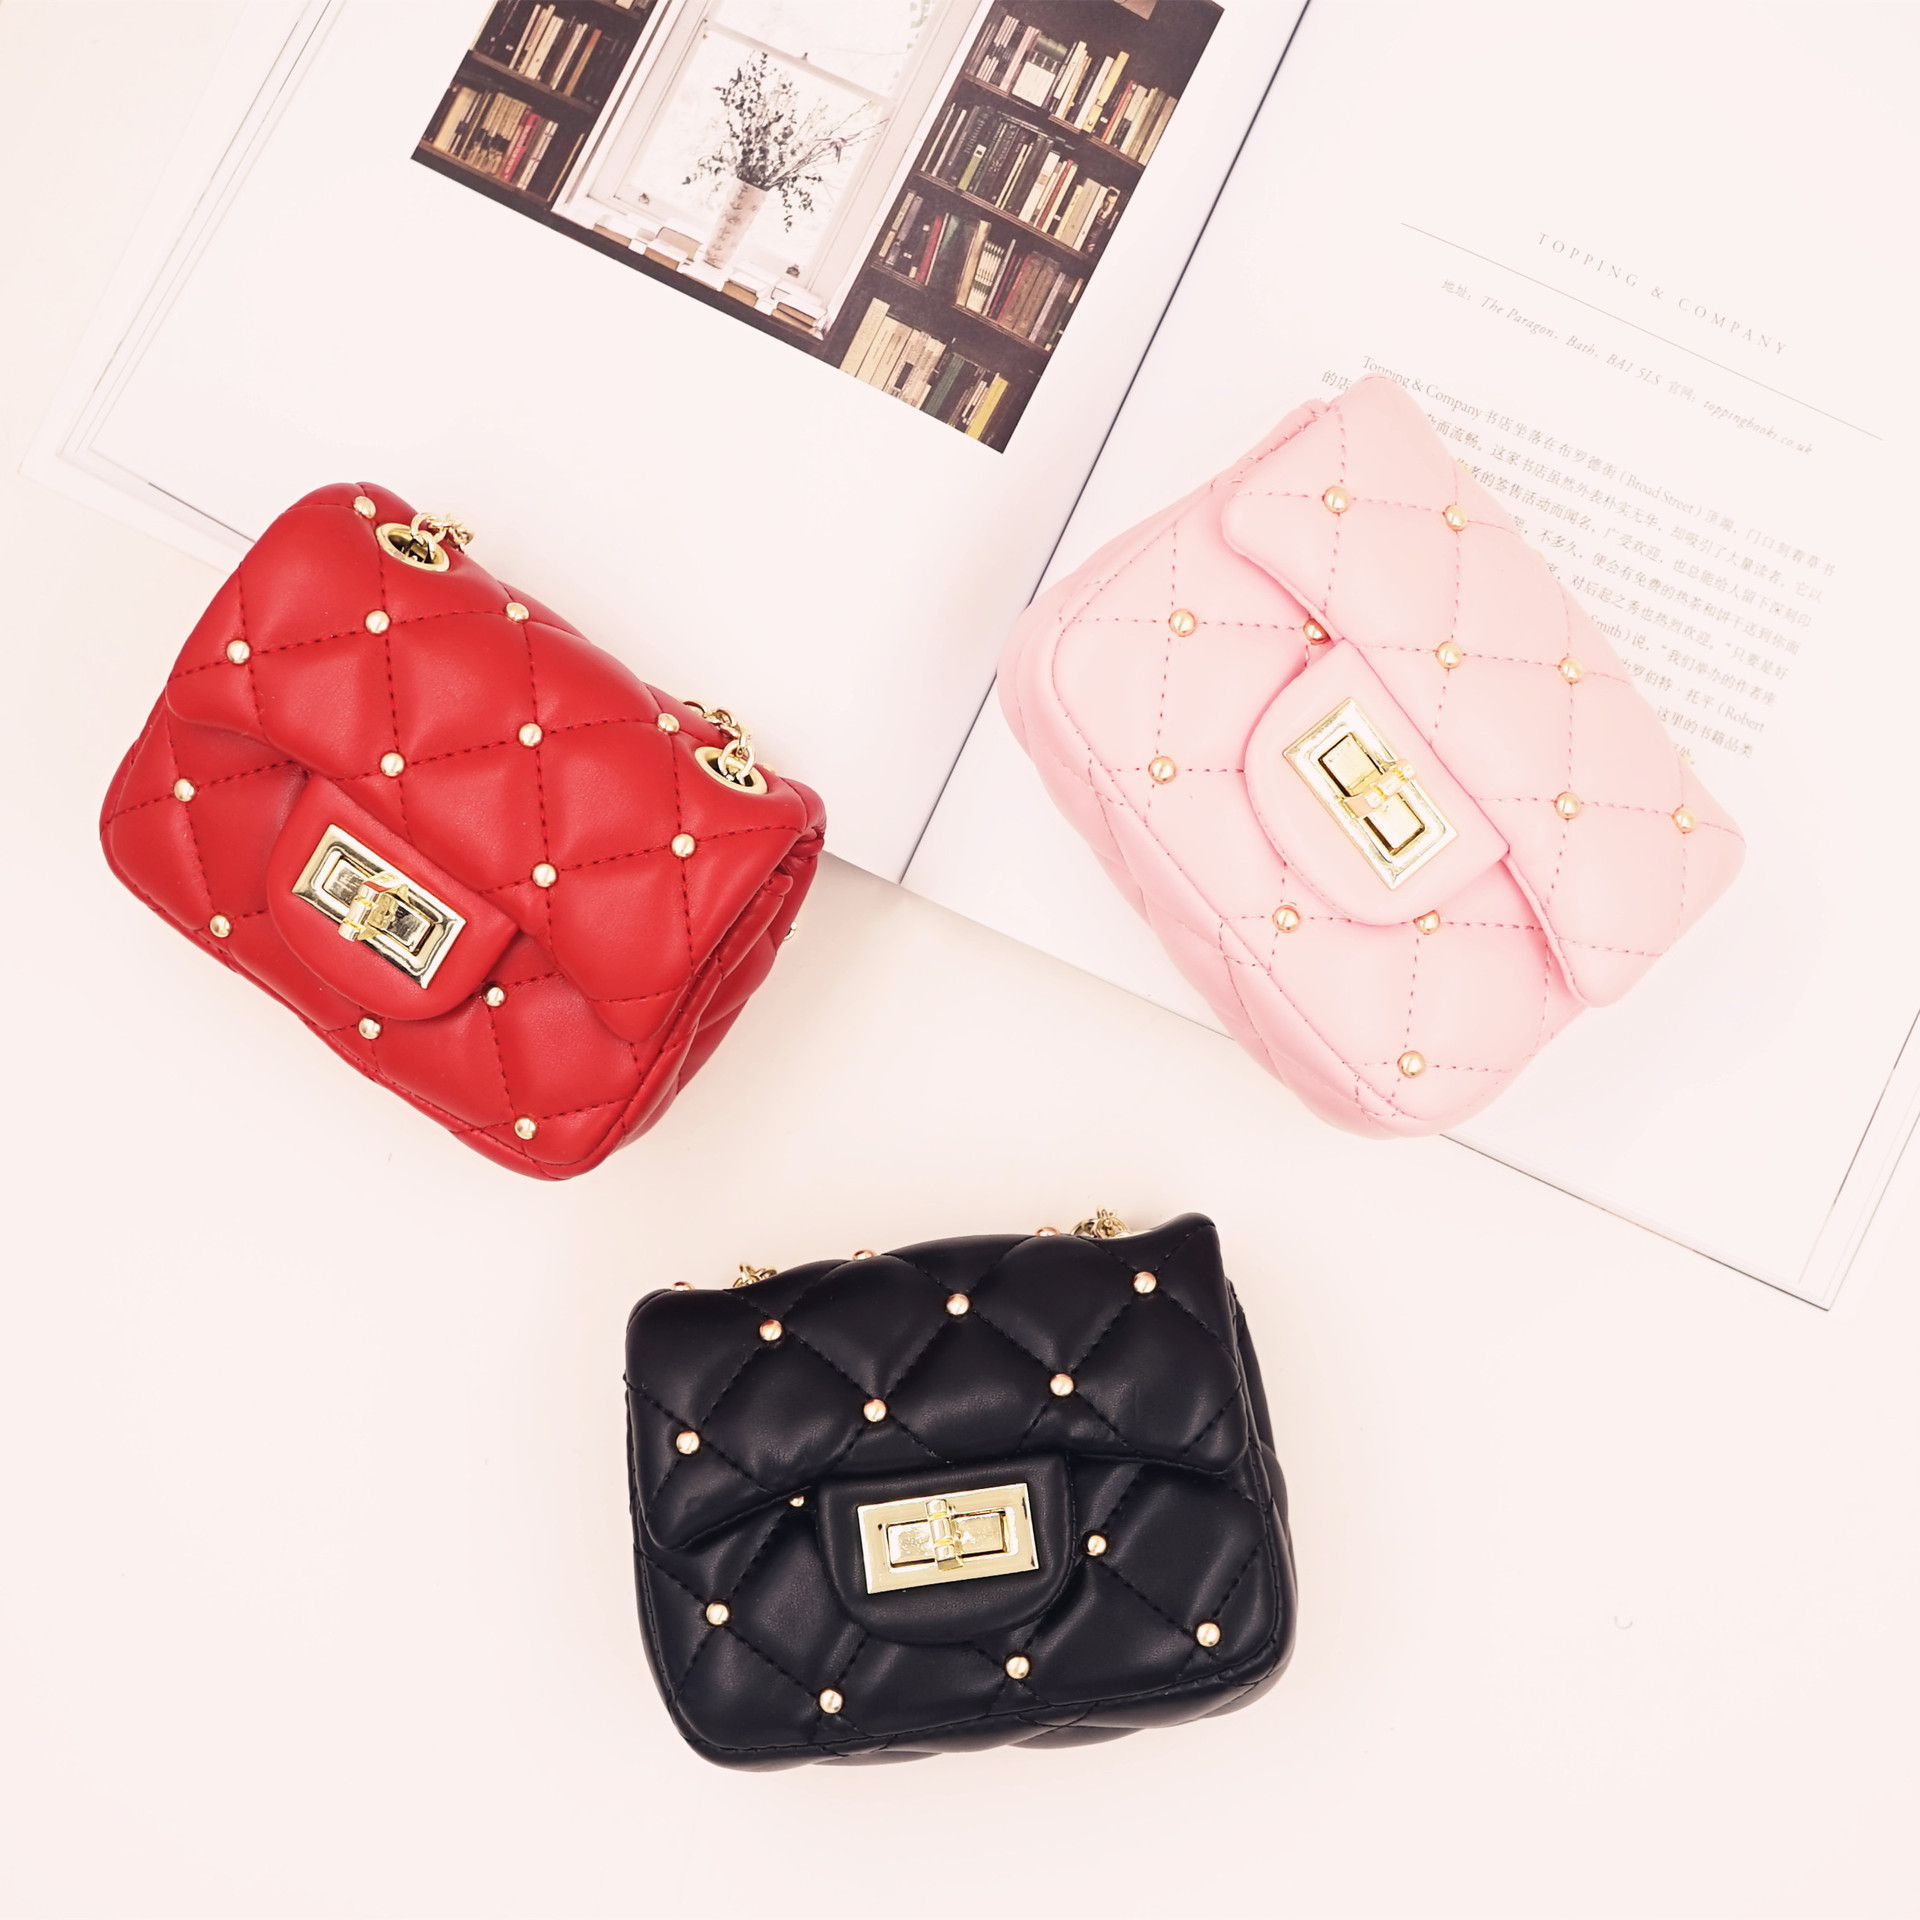 Kids Baby Girl Mini Bag Fashion Cute Girl Bag PU Leather Rivet Bags Princess Messenger Bag Korea Girl Chain Bag Fast Shipping